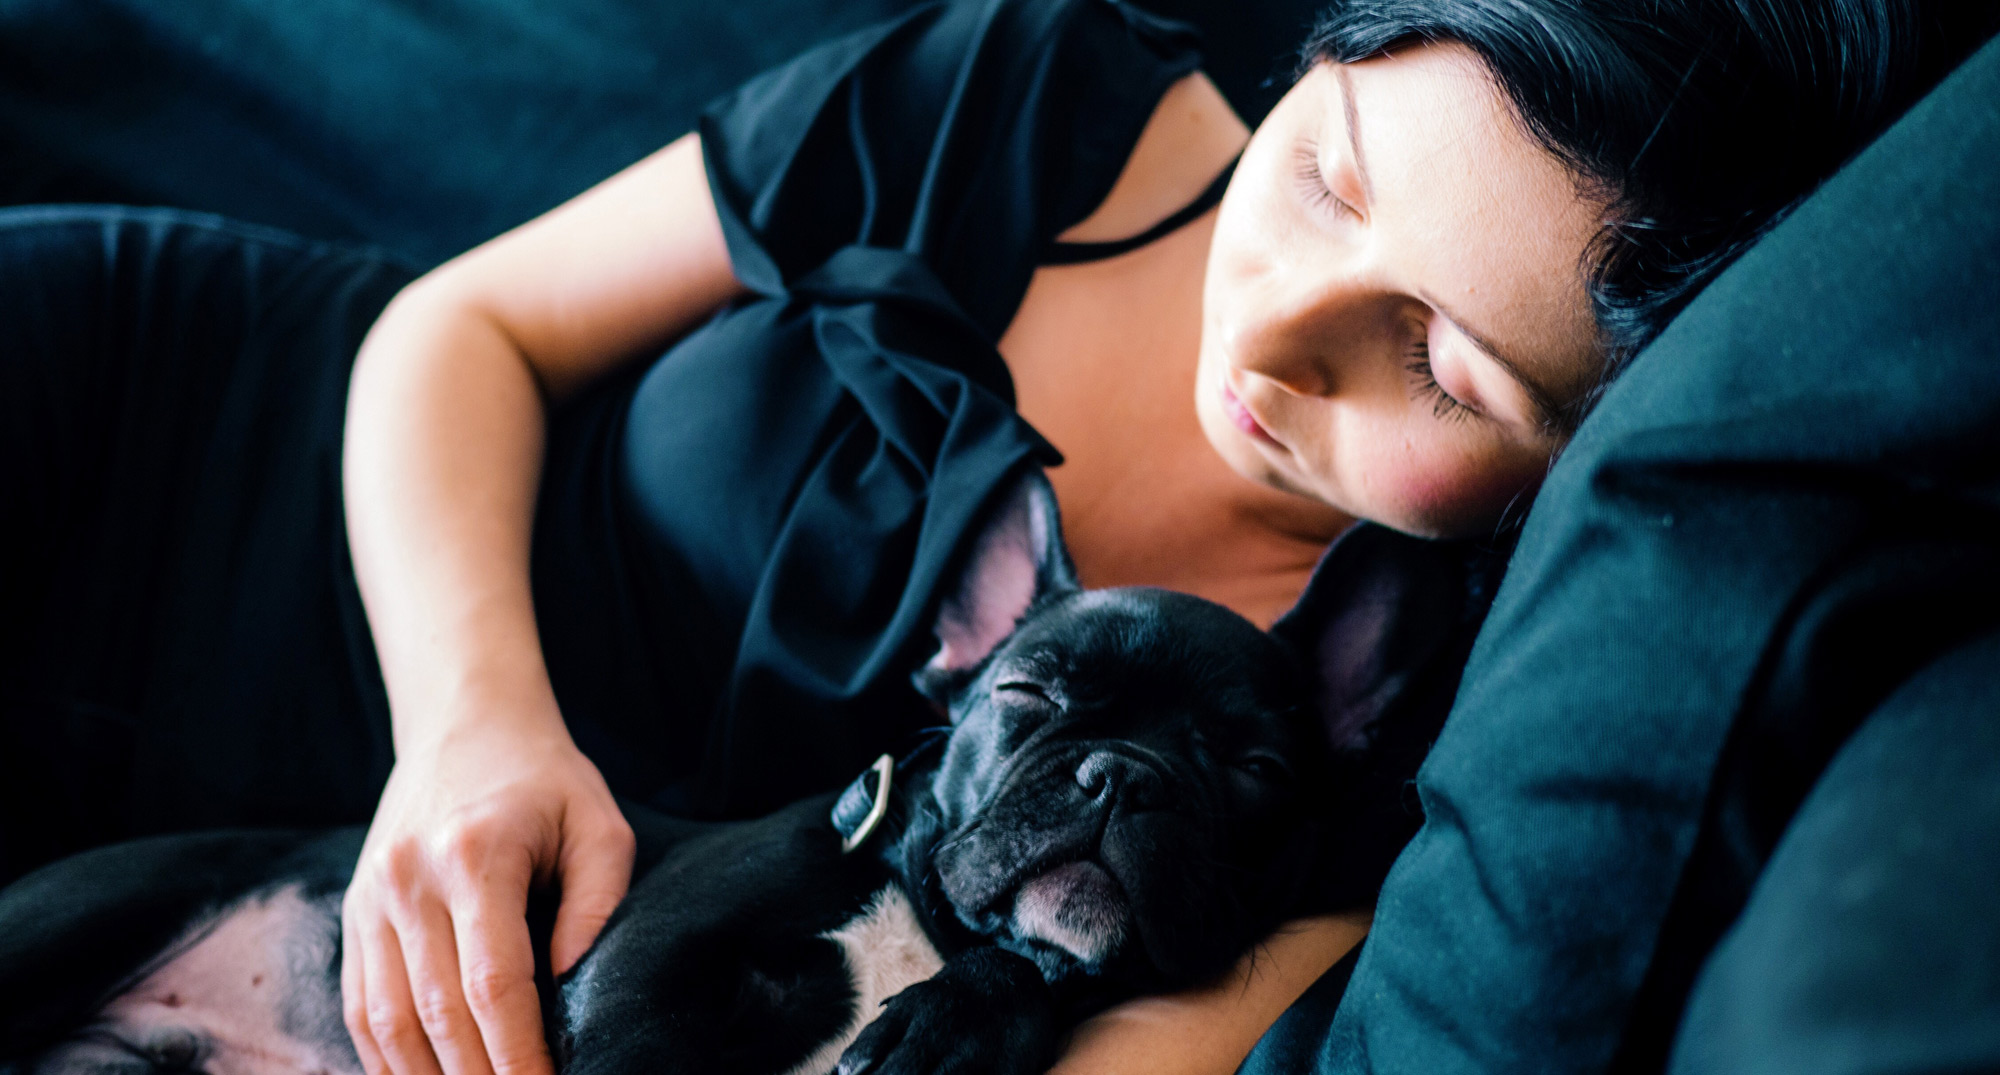 Seven Tips for Better Sleep to Beat Insomnia